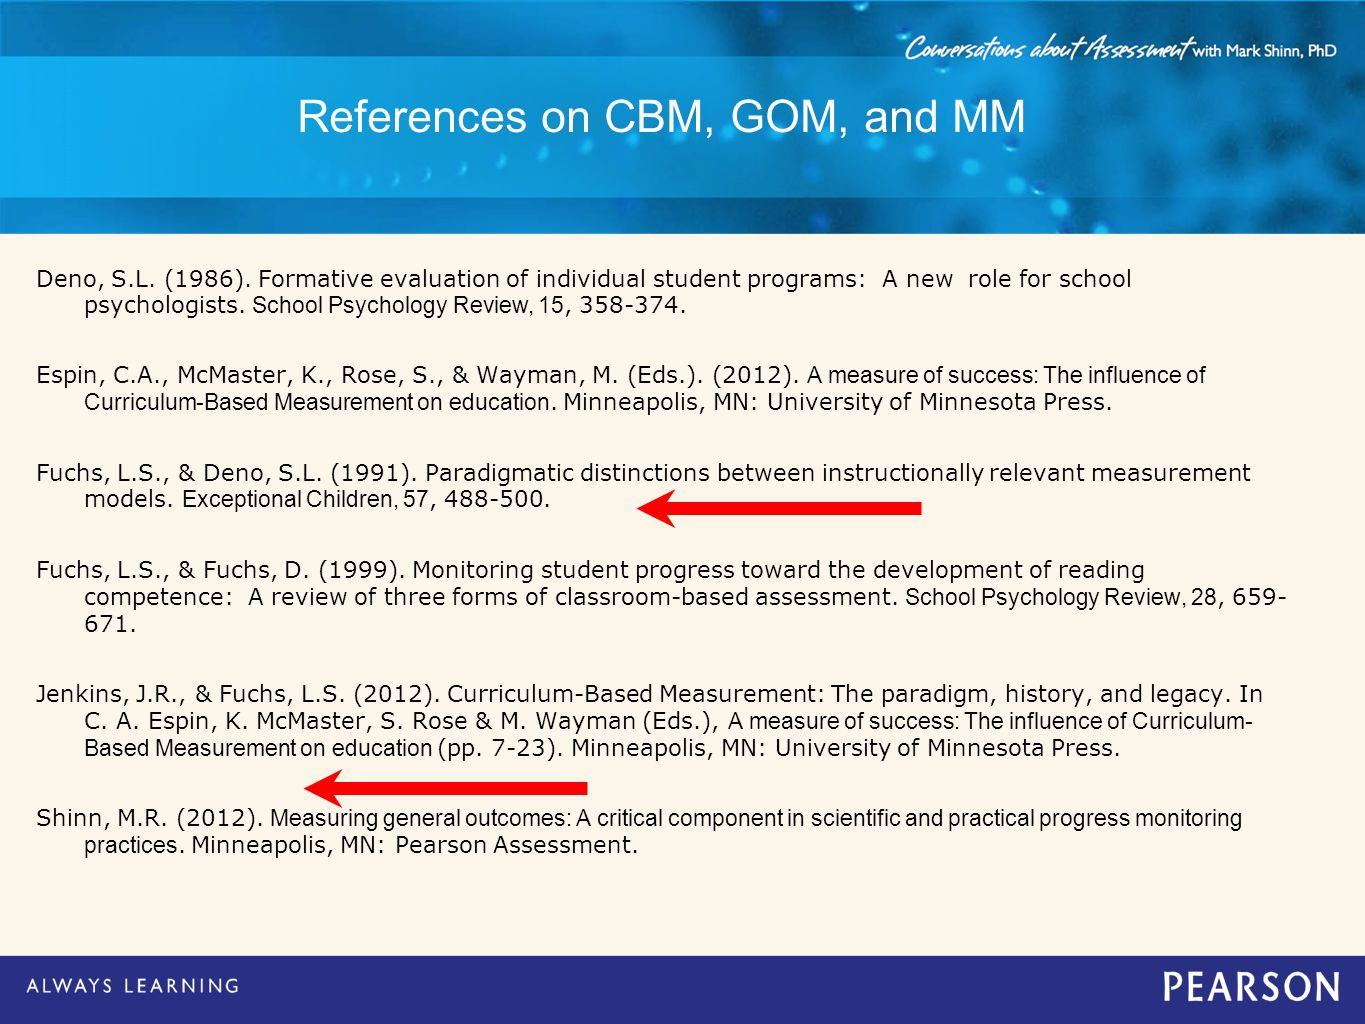 References on CBM, GOM, and MM